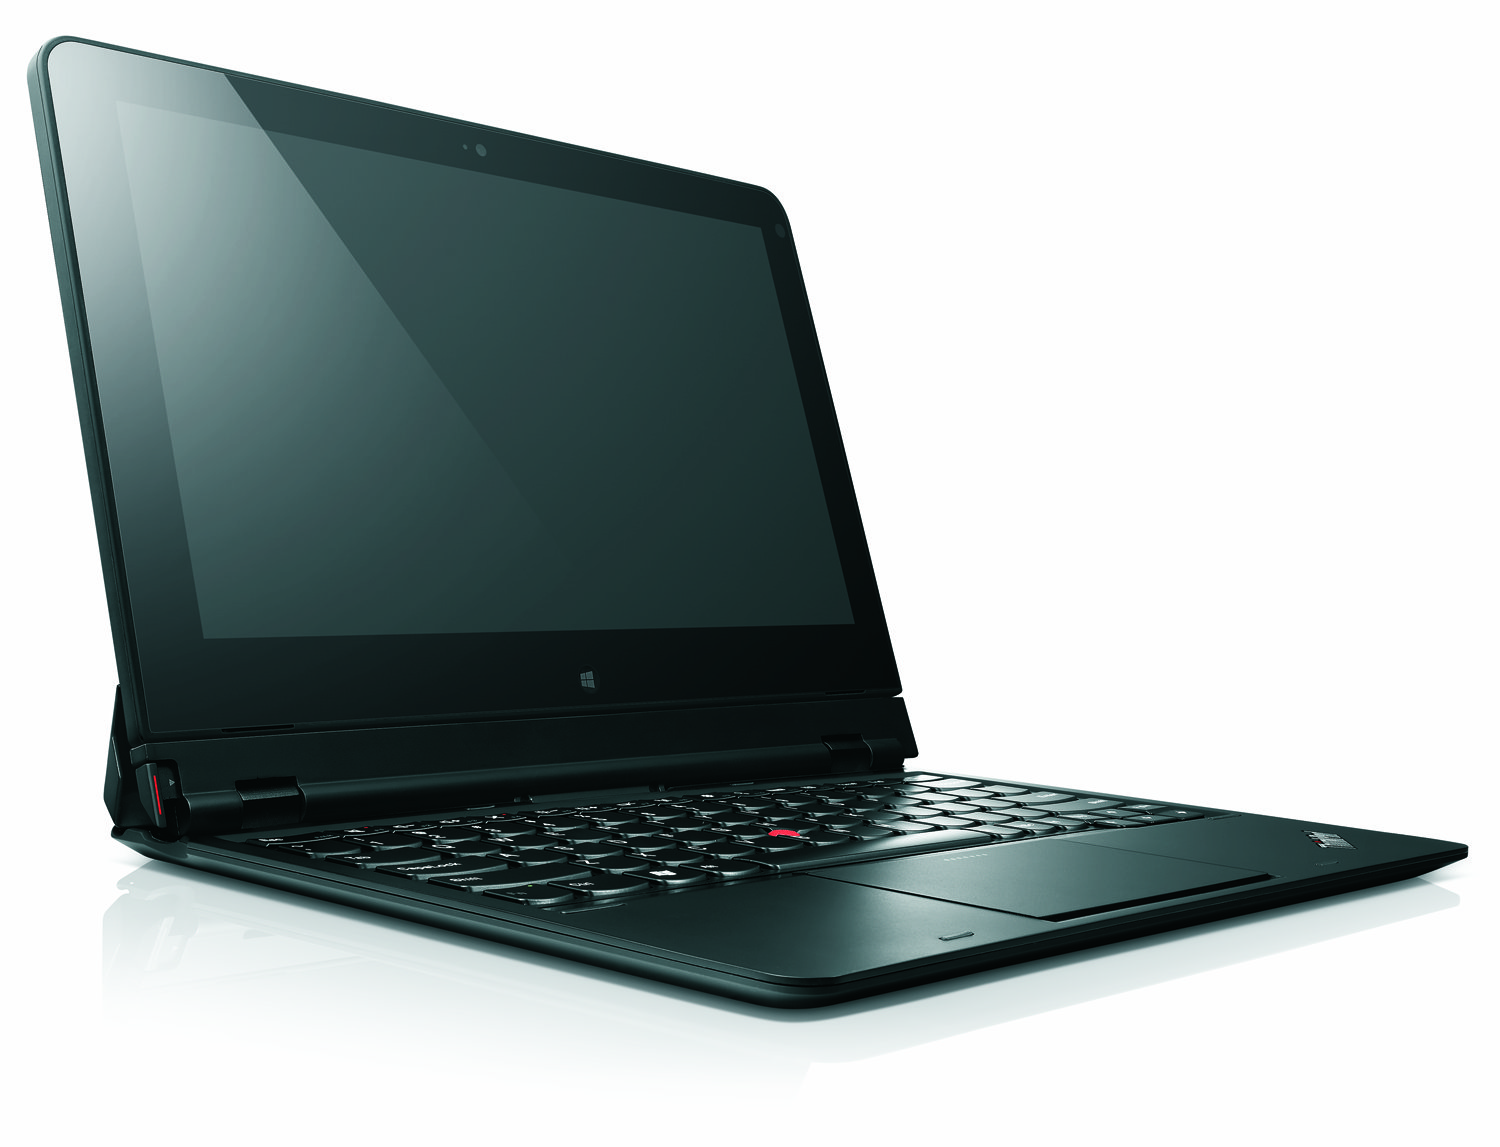 2013_07_ThinkPad-Helix-Image-17